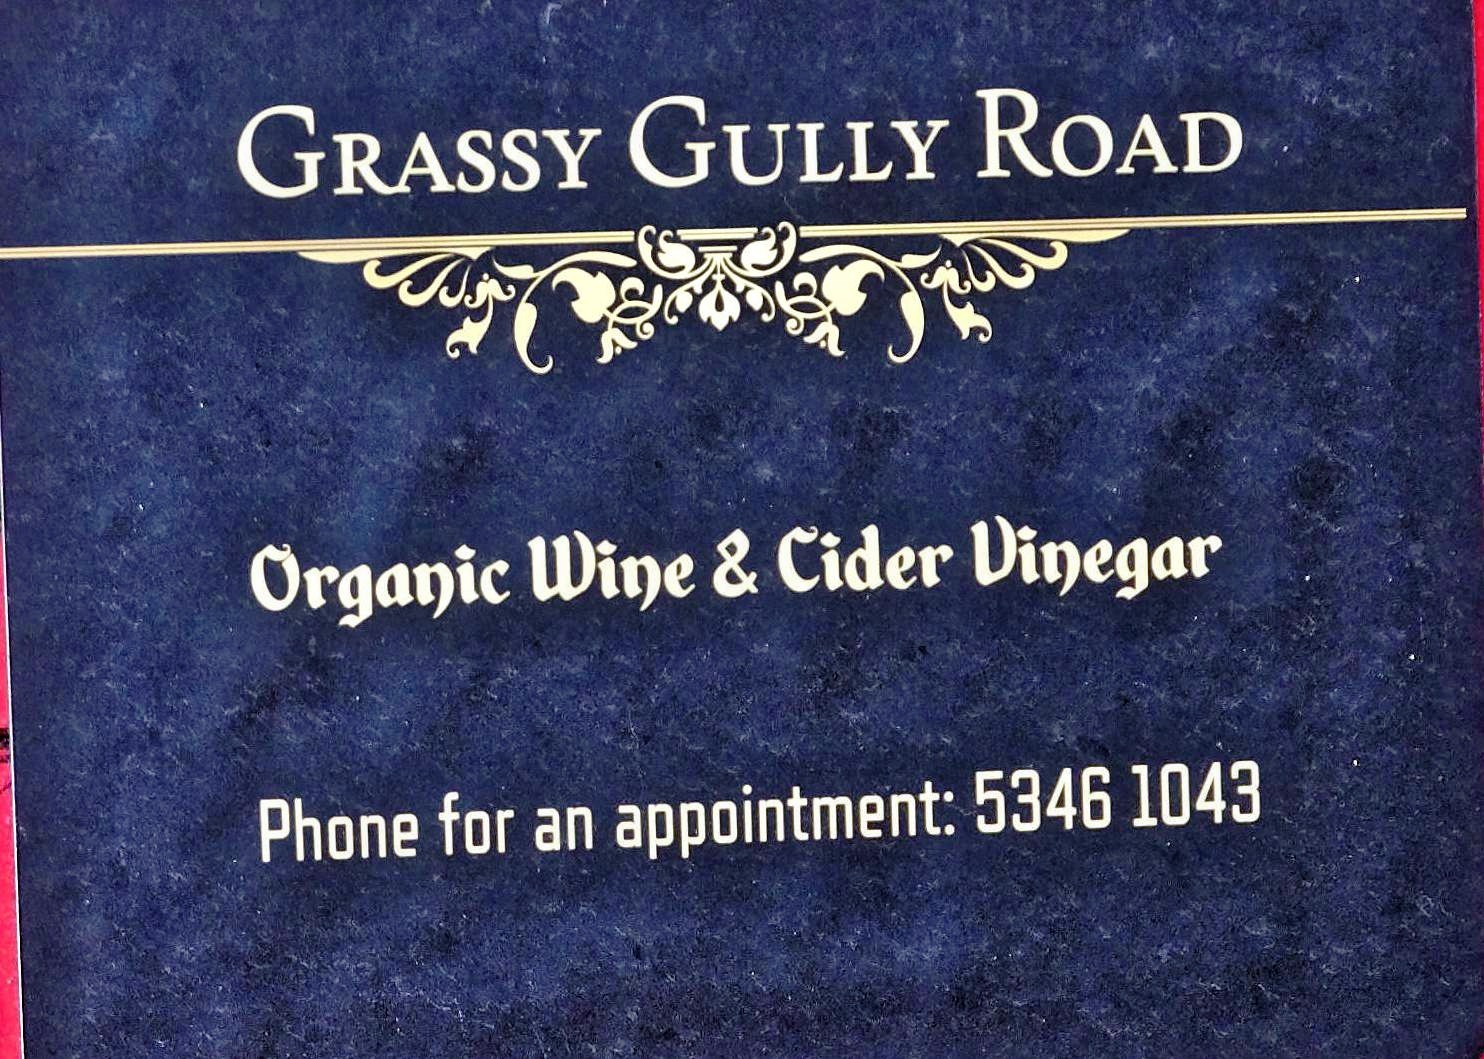 This should be Grassy-Gully-Organic-Wine-1-detail.jpeg.  Is it missing?